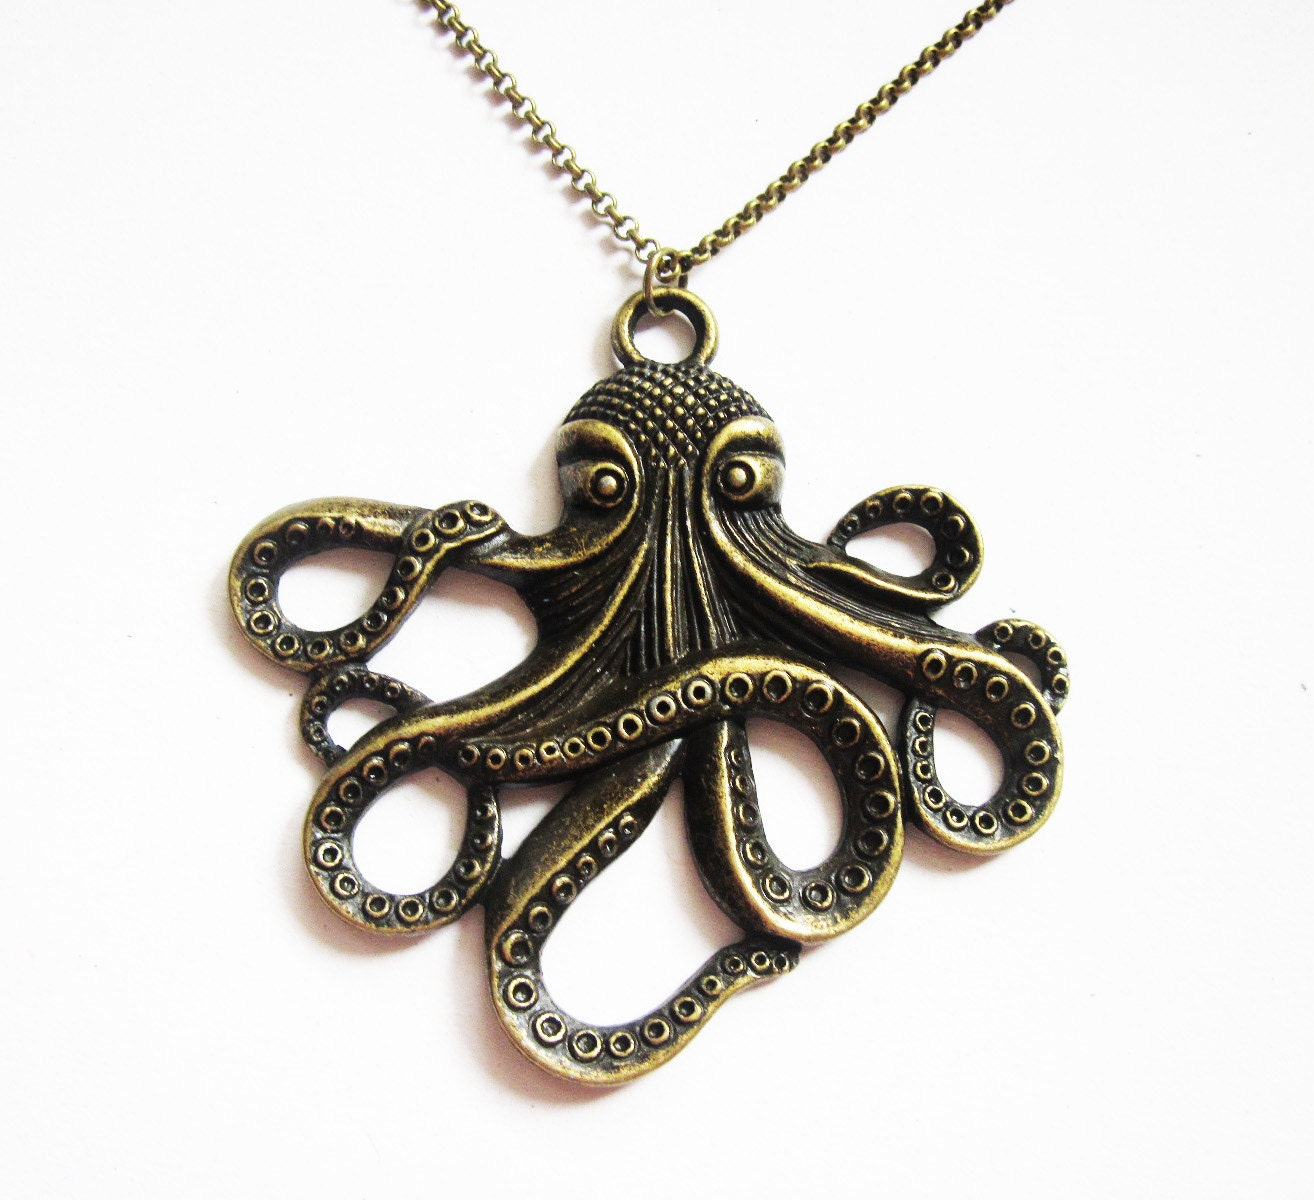 highly com detailed matthewamey all wear it either octopus pendant blog sterling around s silver way in